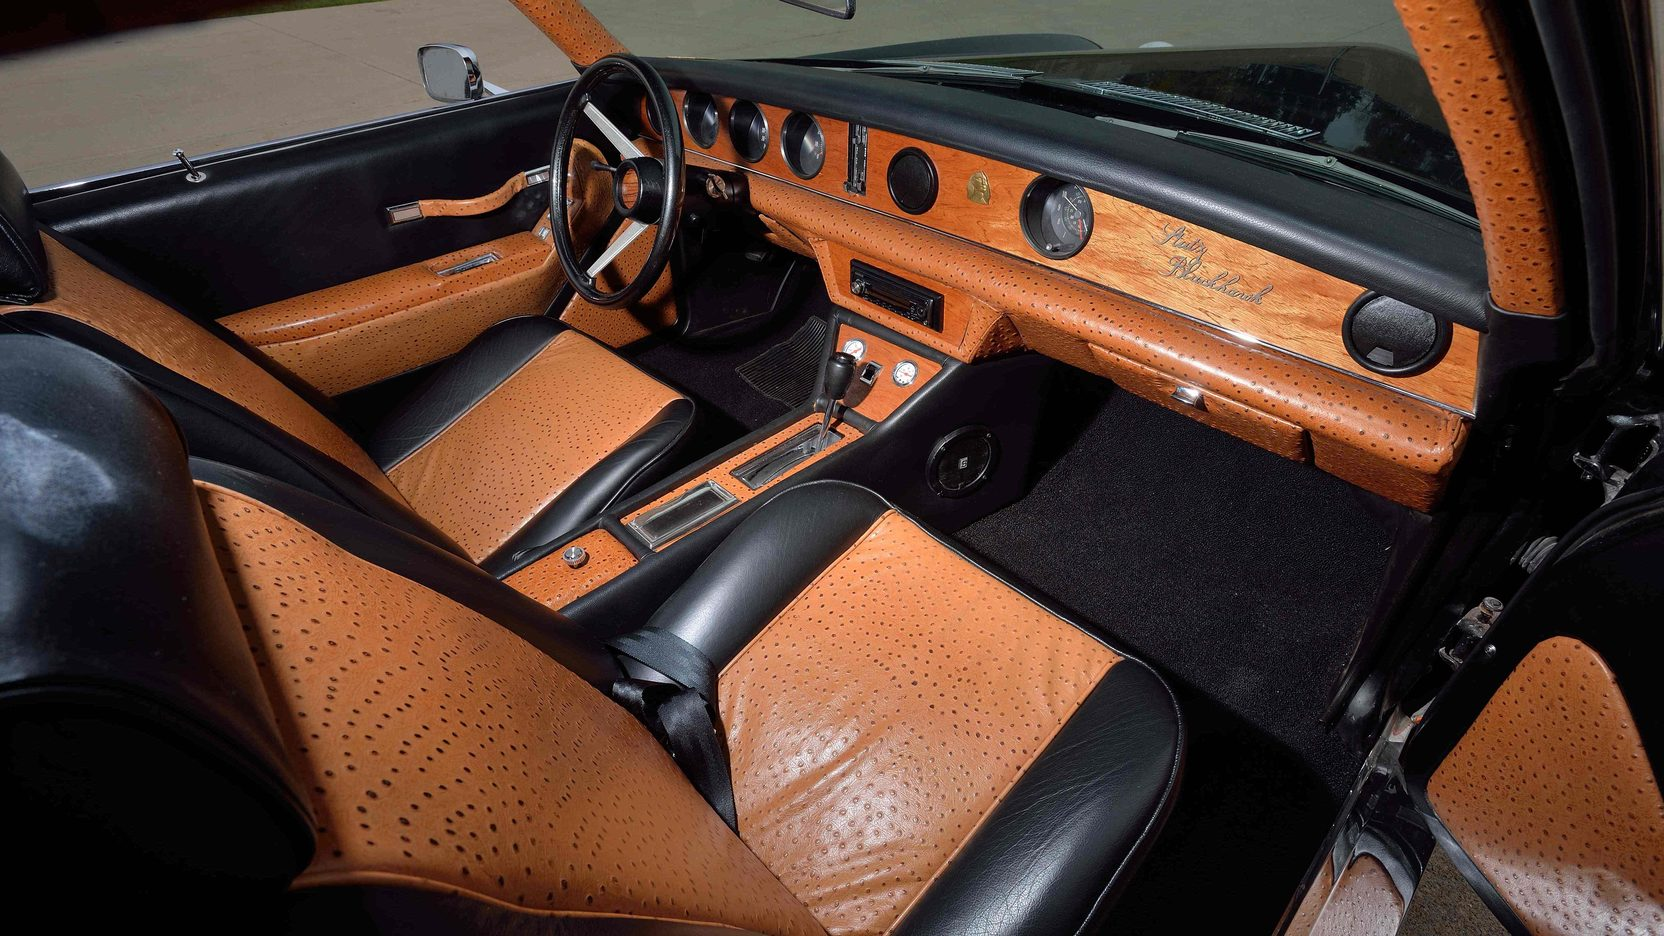 The interior of the revived Stutz is sixties modern with heavy use of leather and wood. It is a luxurious and tasteful design.